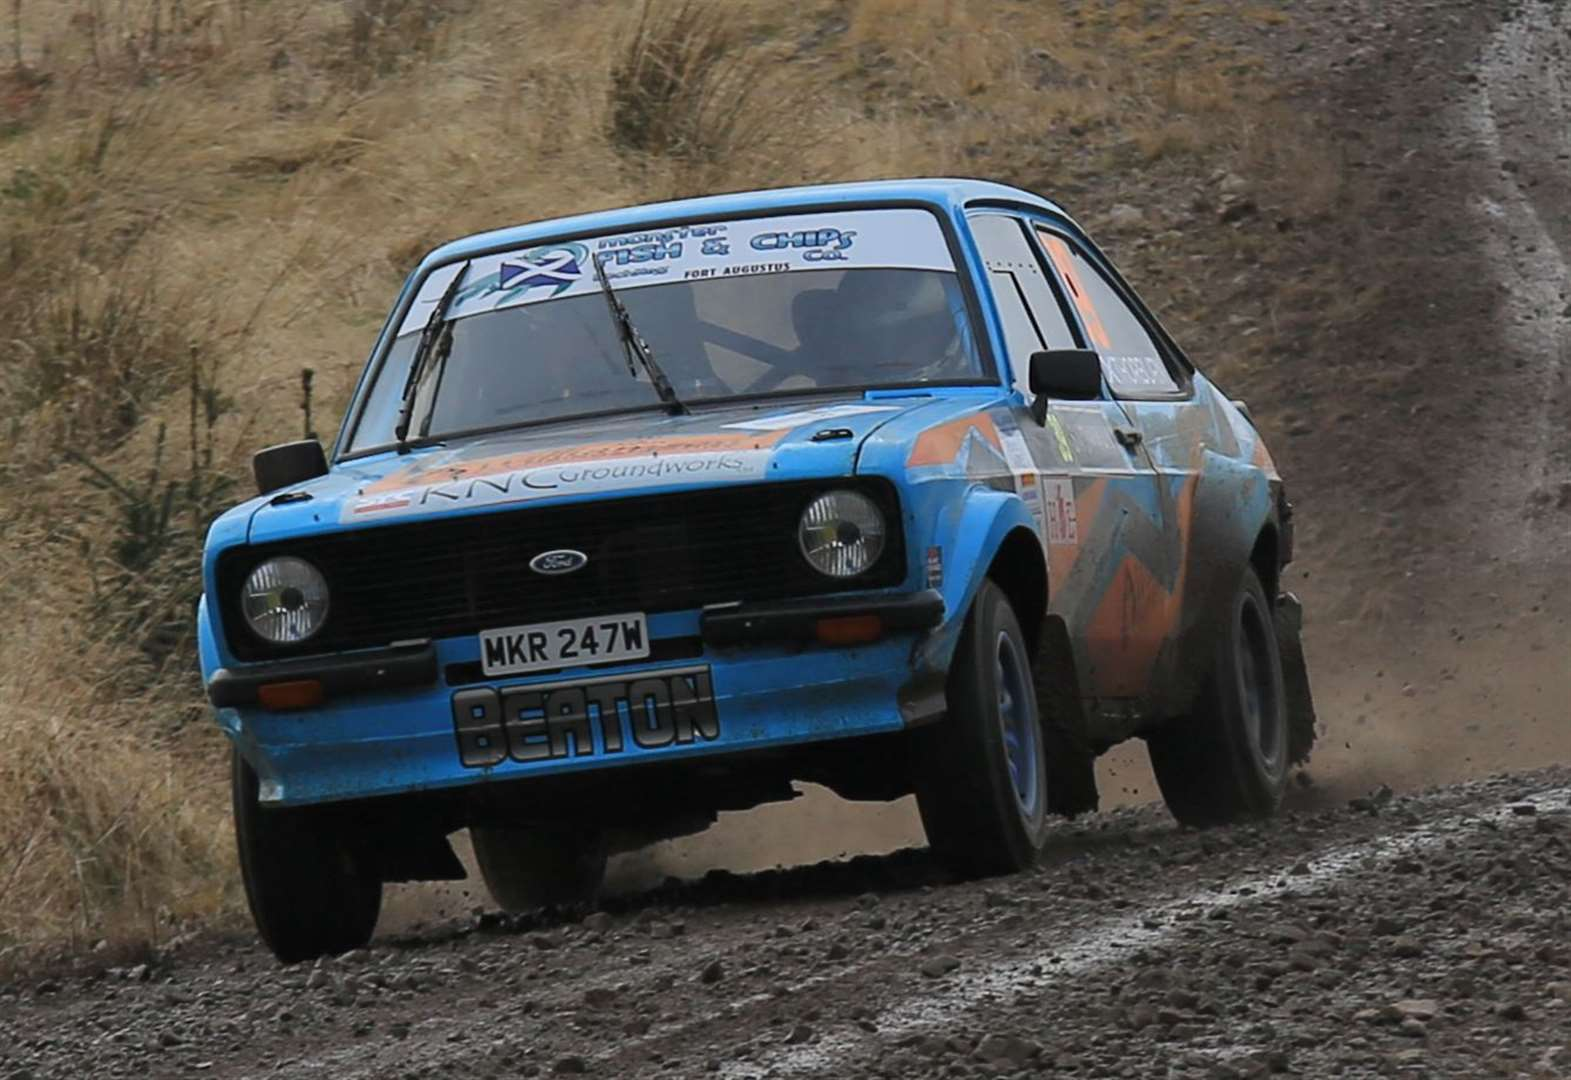 All events on Scottish Rally Championship calendar cancelled